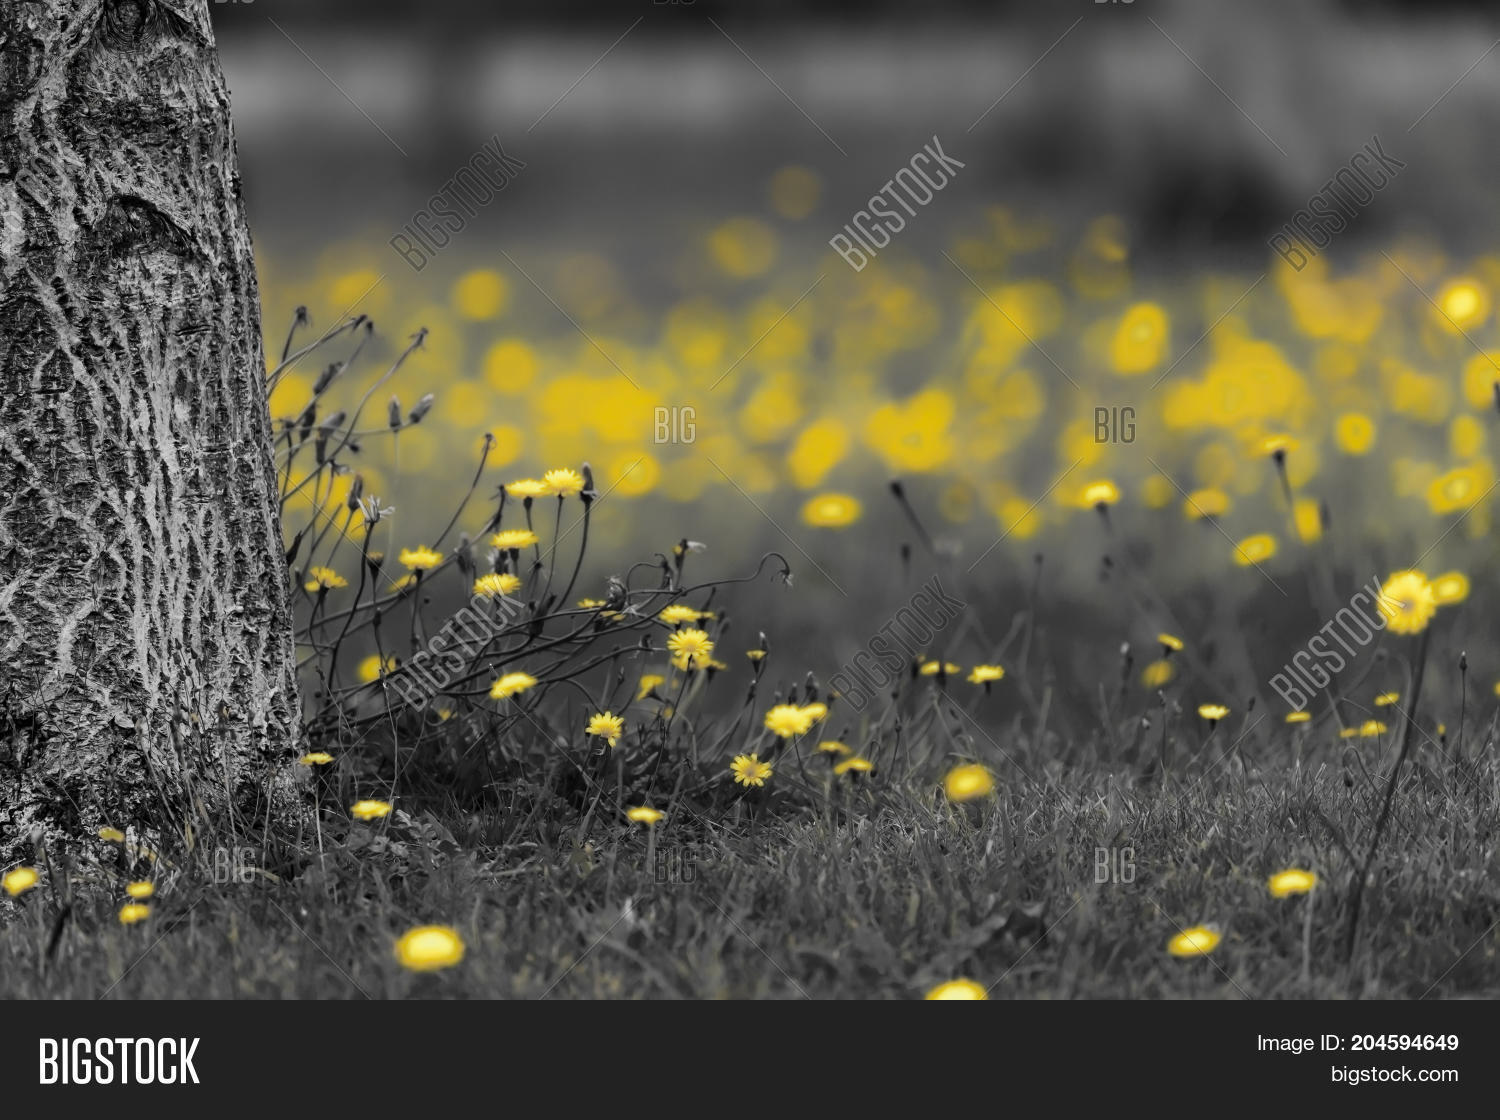 Field Of Dandelions In Black And White With The Yellow Flower Heads Color Splash